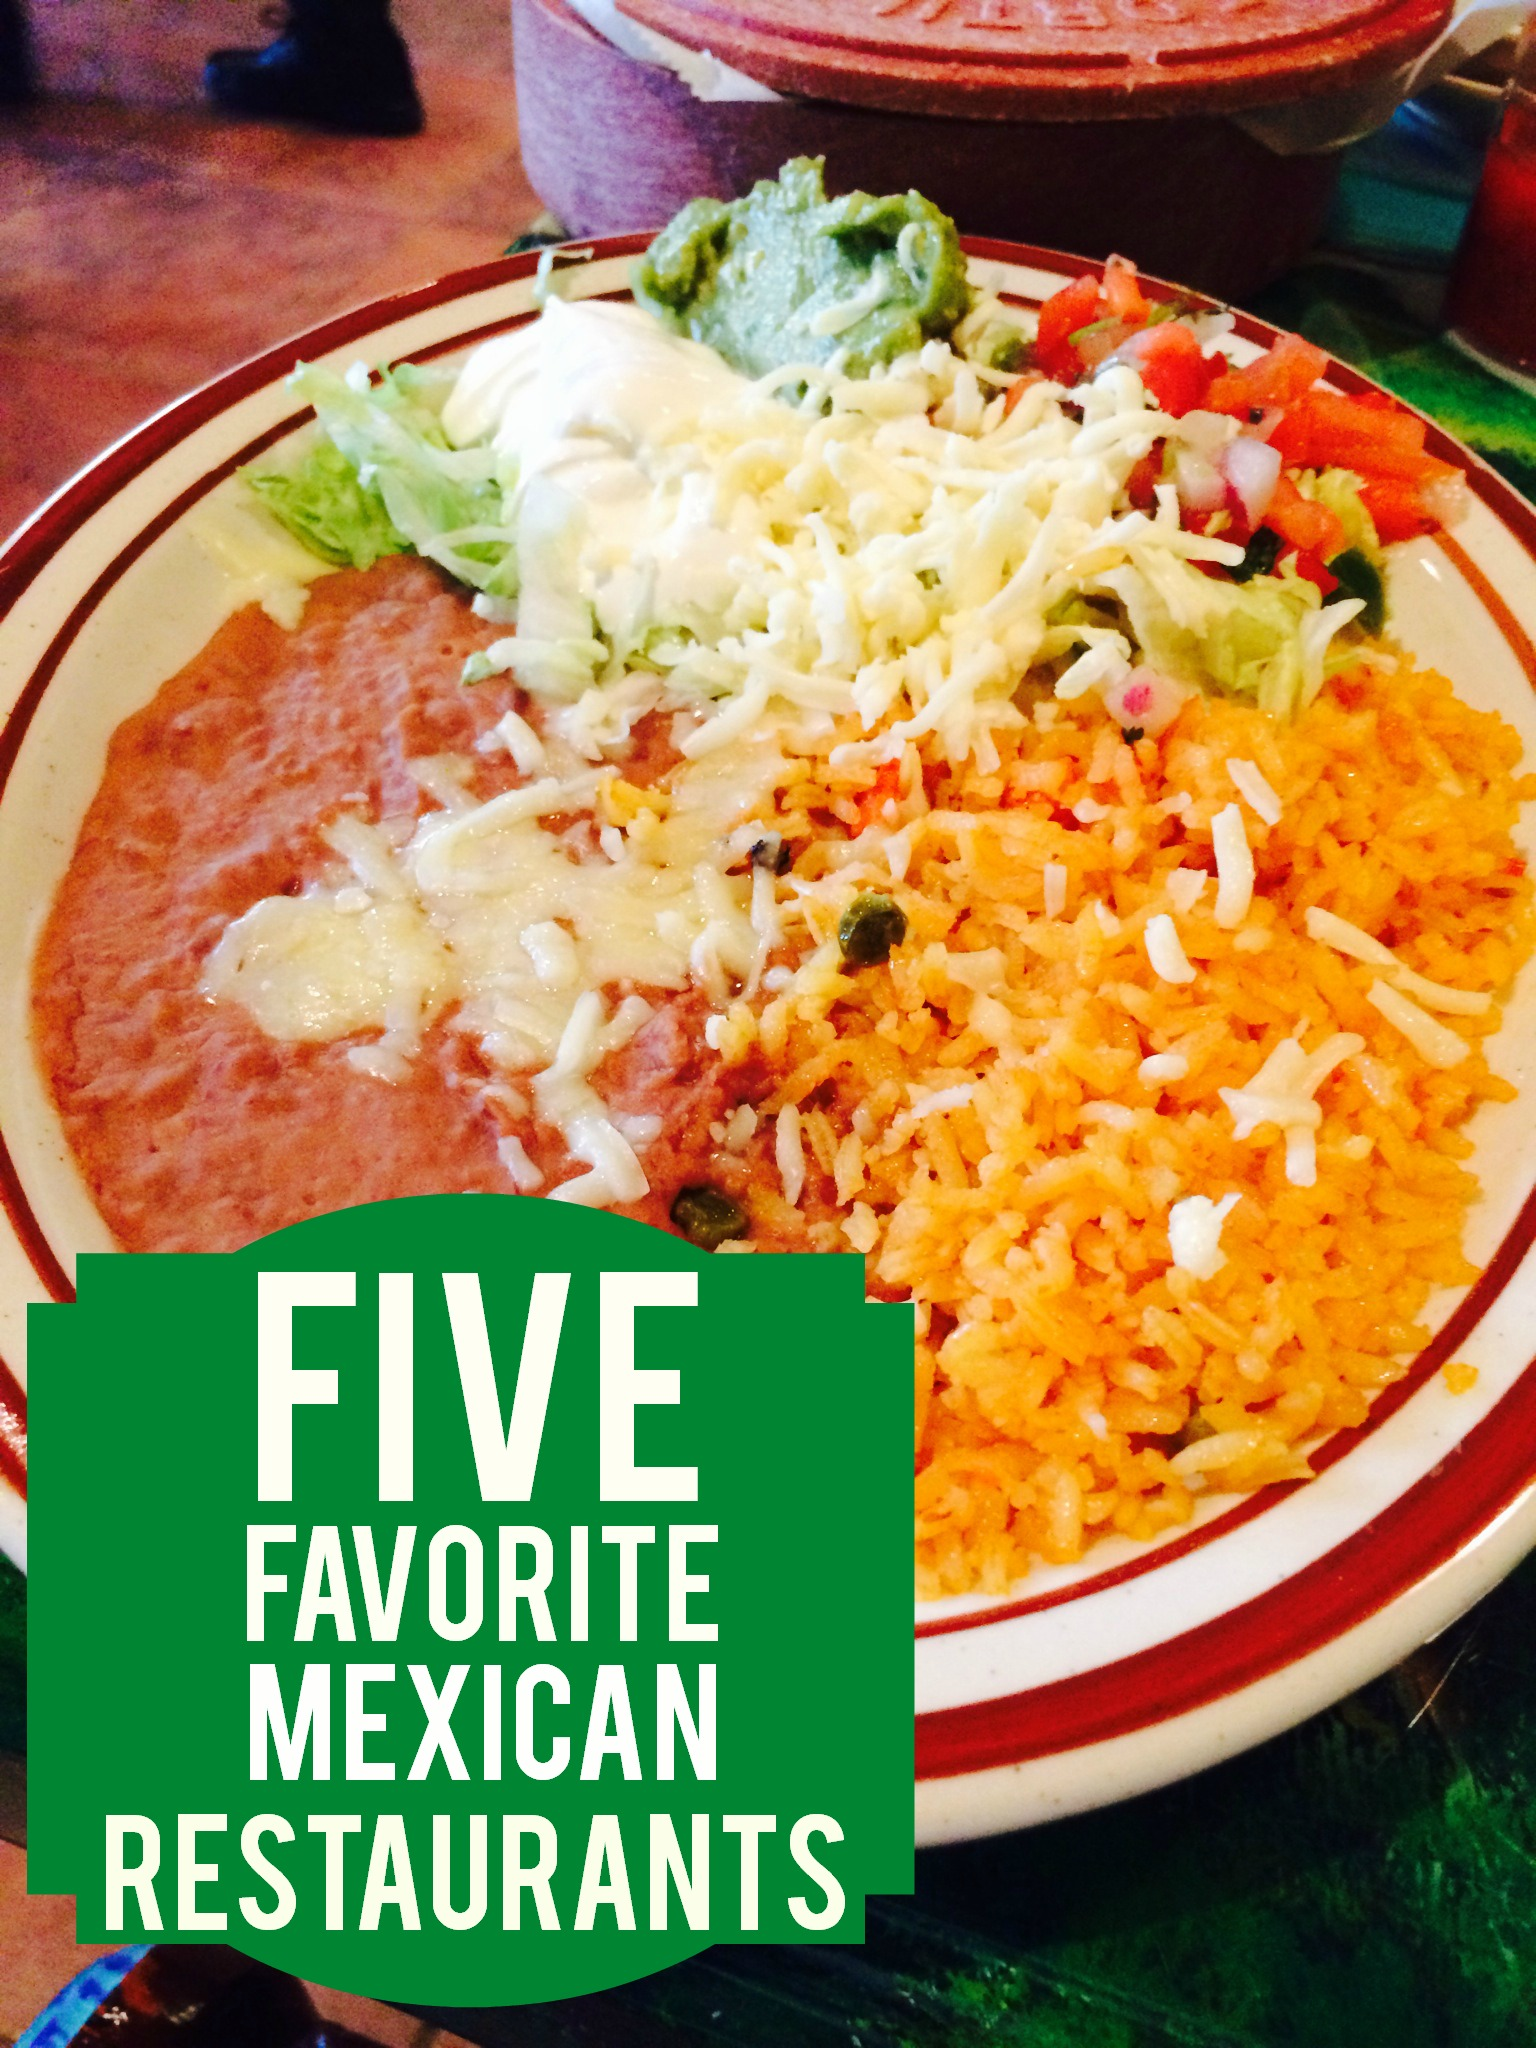 Five Places to get Great Mexican Food on the Northshore